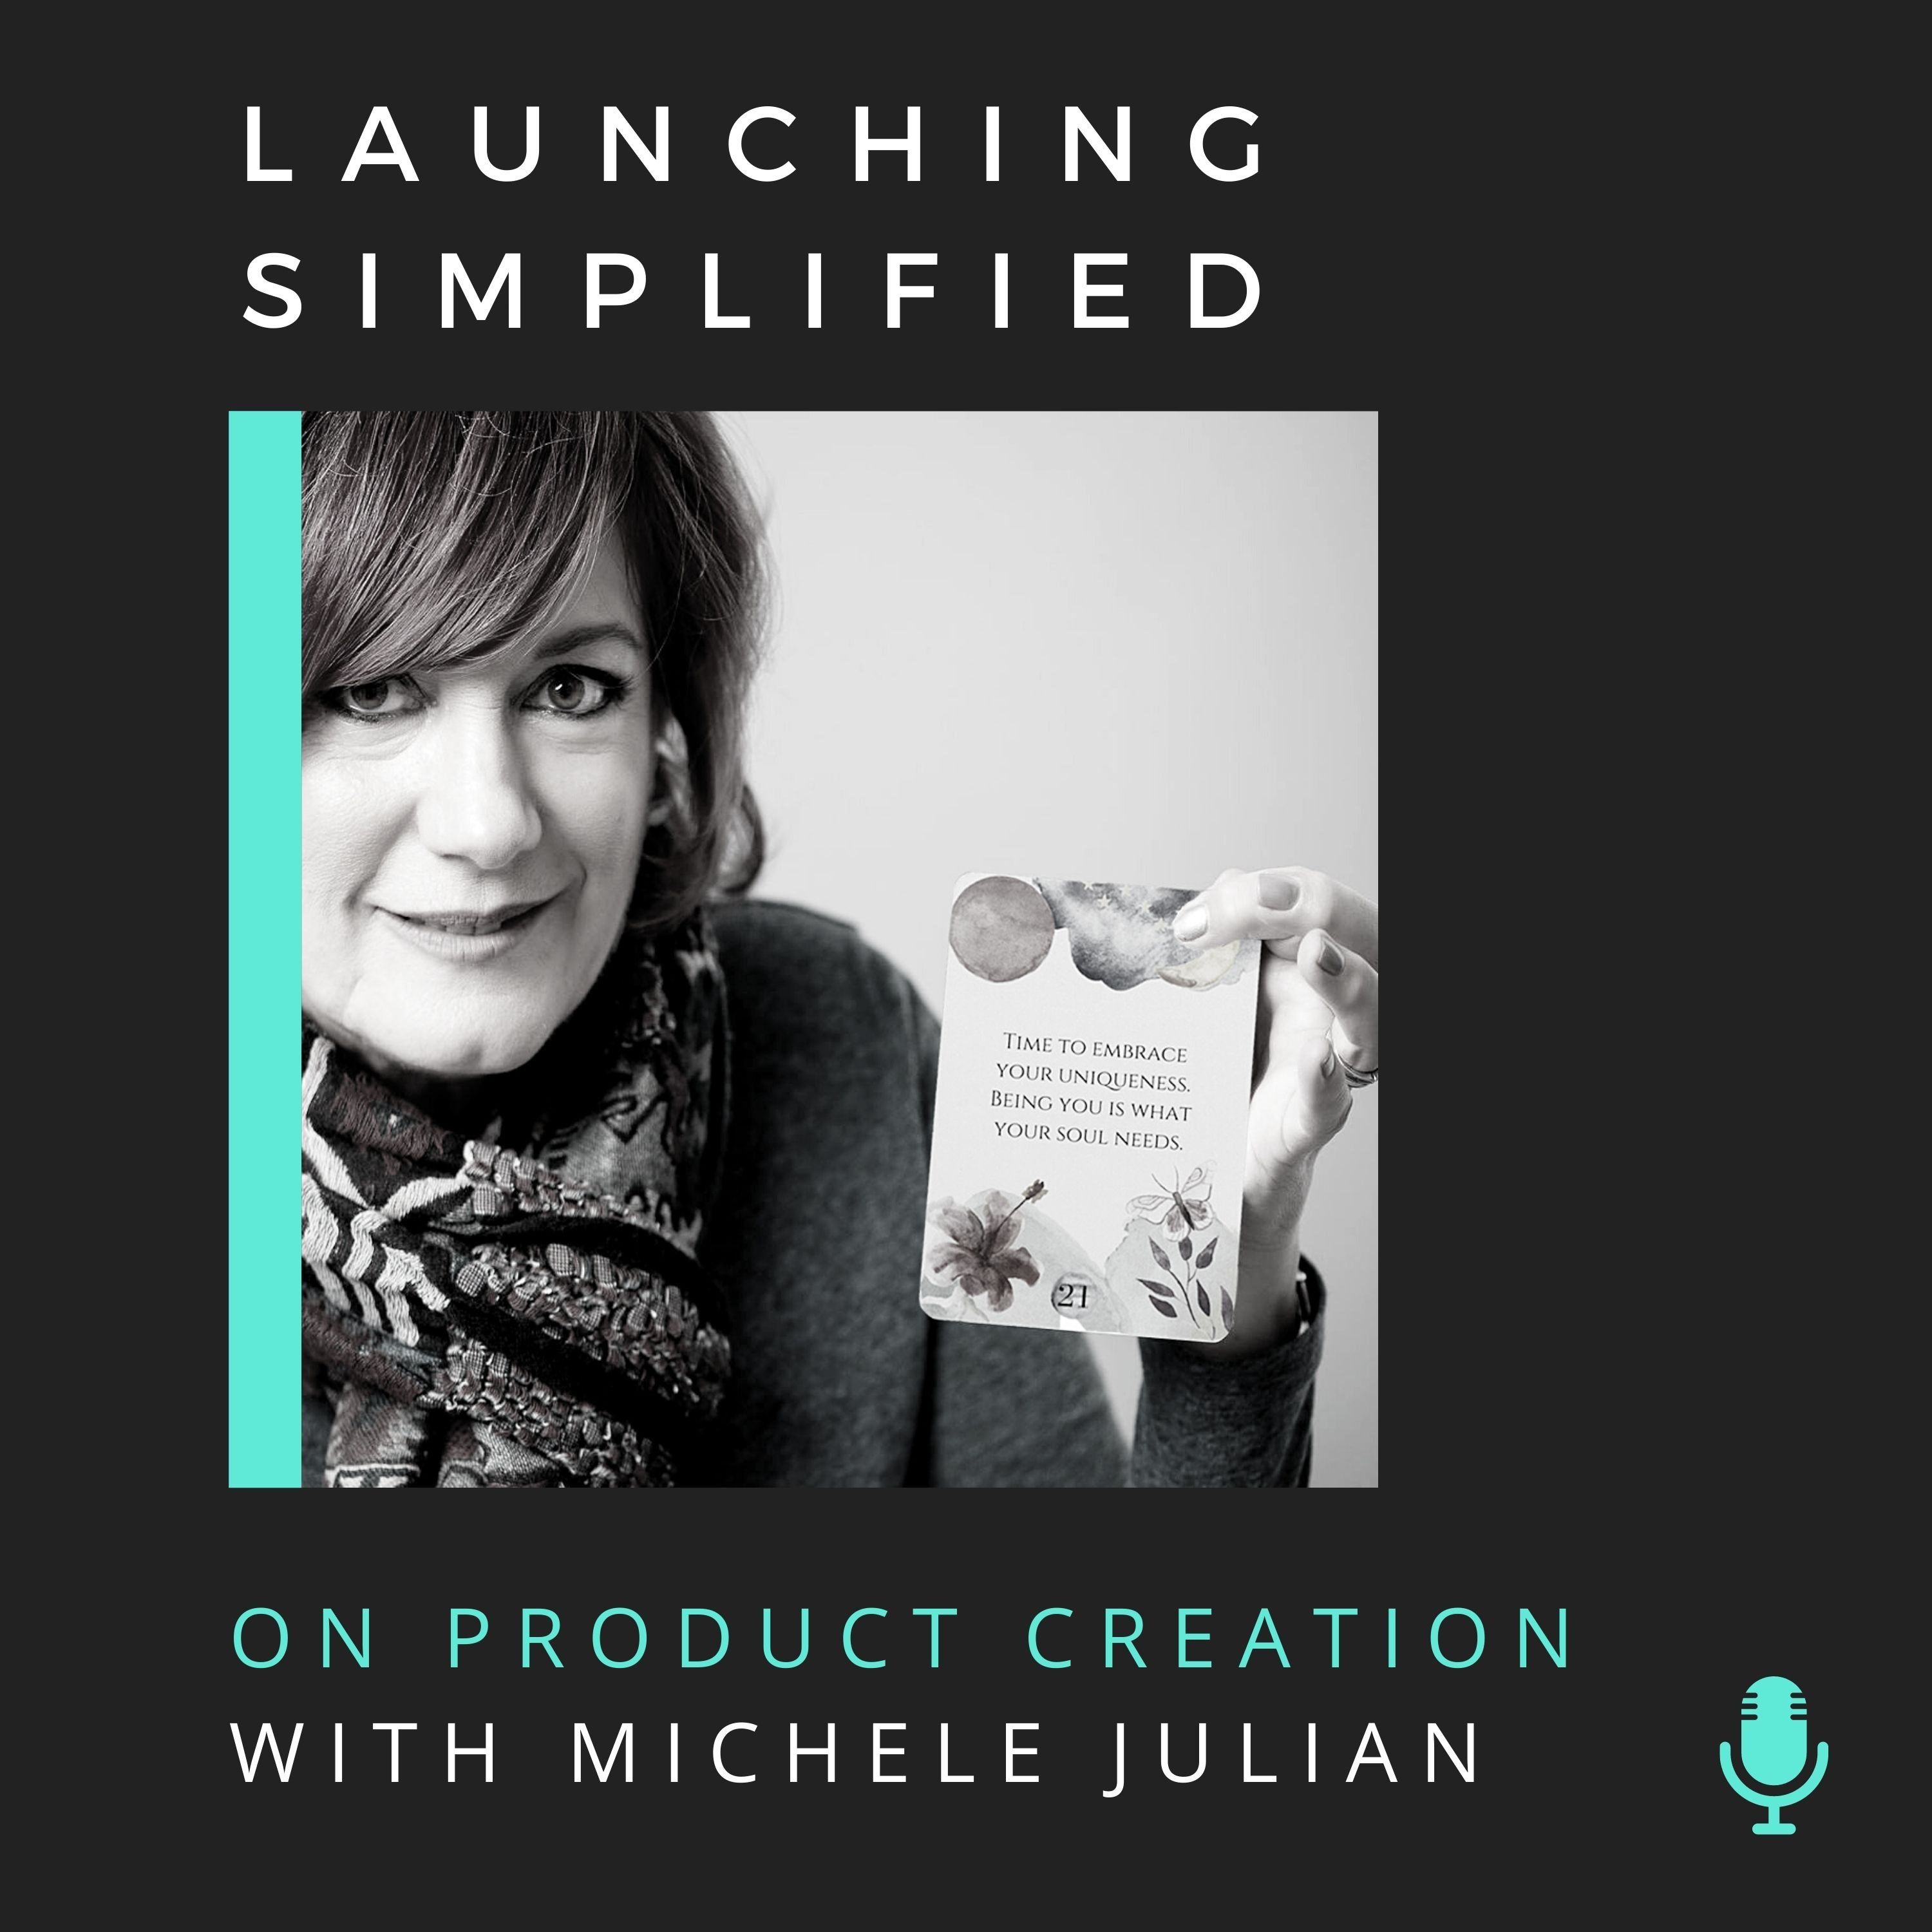 How an Inspired Product Creation Transformed Michele Julian's Wellness Business